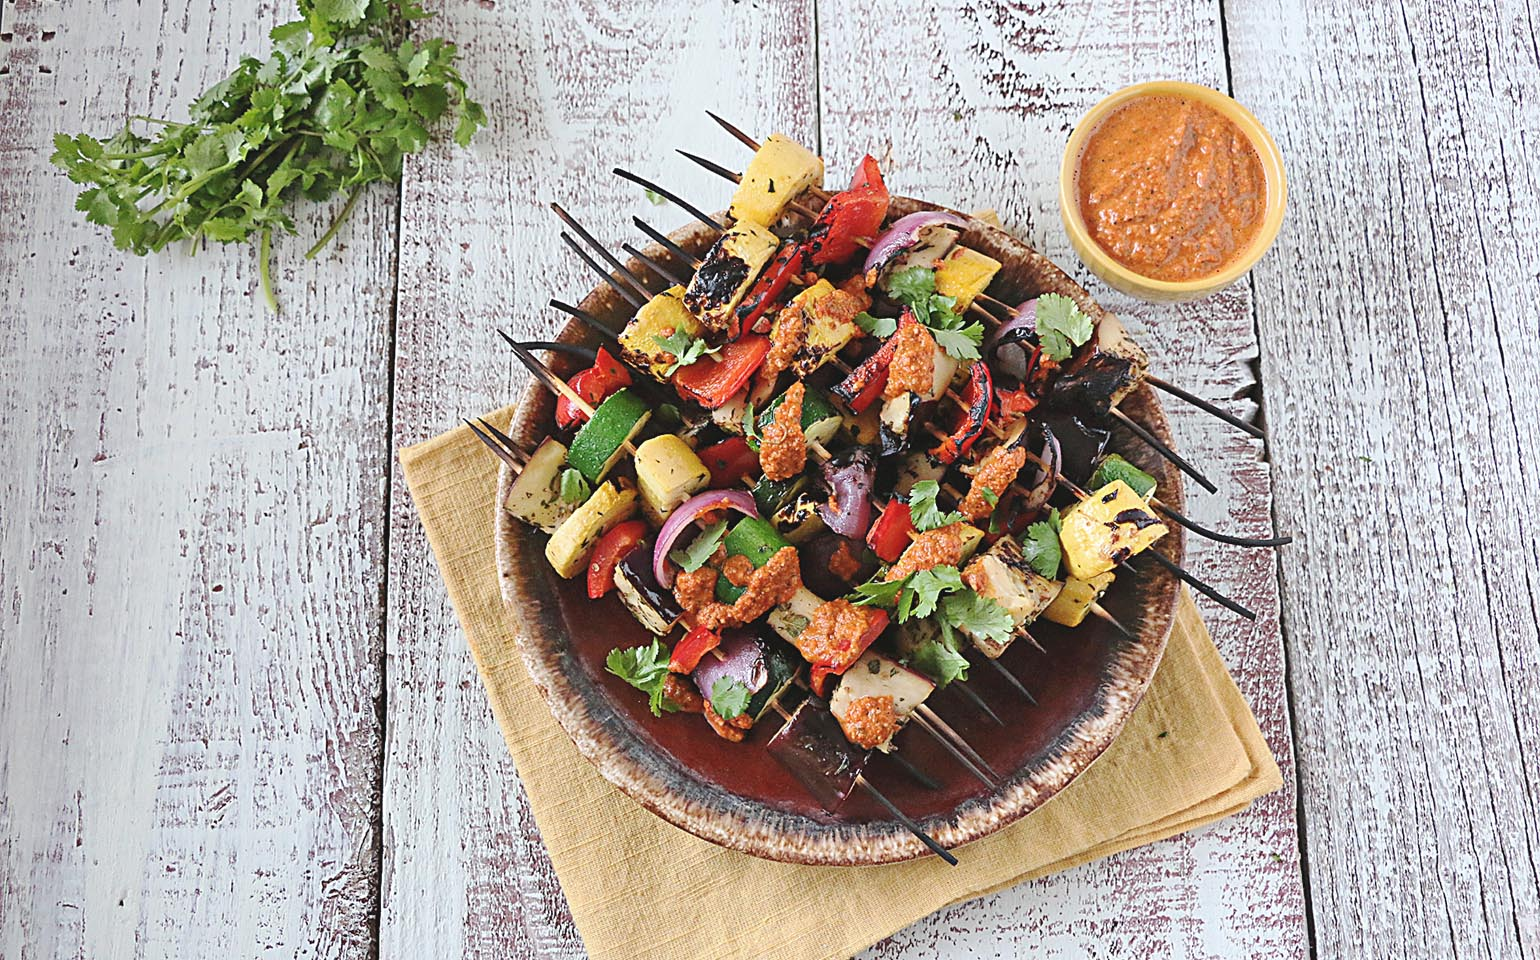 Grilled Lemon Marinated Summer Vegetables with Romesco Sauce